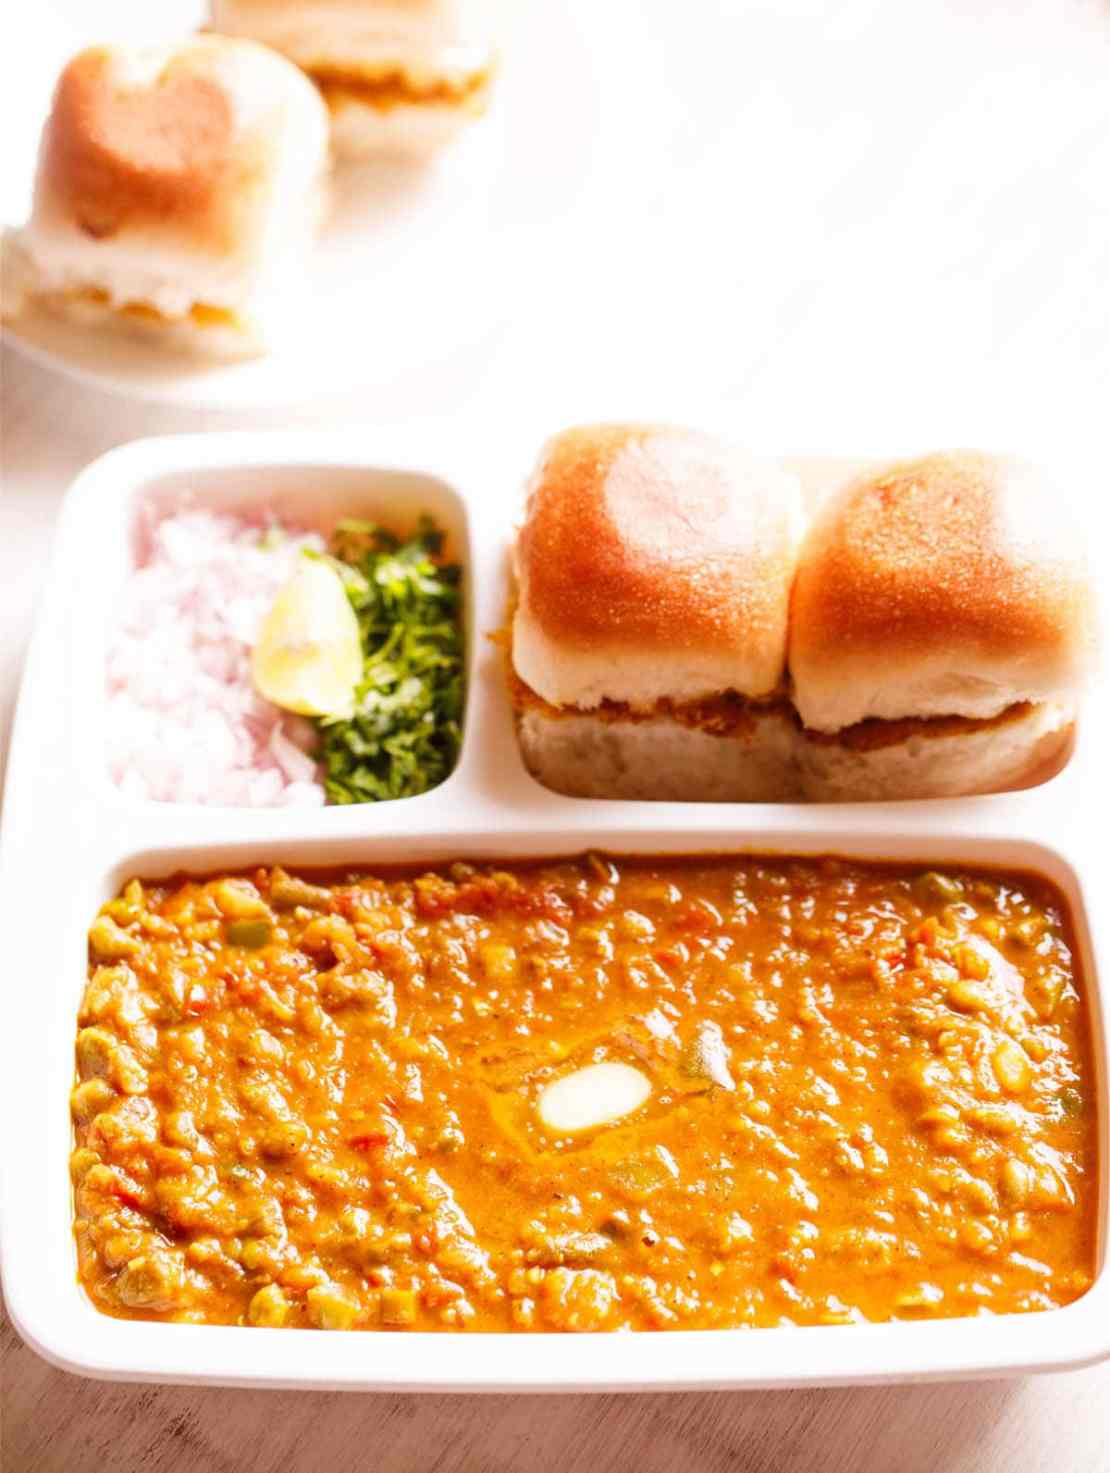 pav bhaji served in a rectangular serving tray with buttered pav and chopped onions, cilantro and lemon wedges